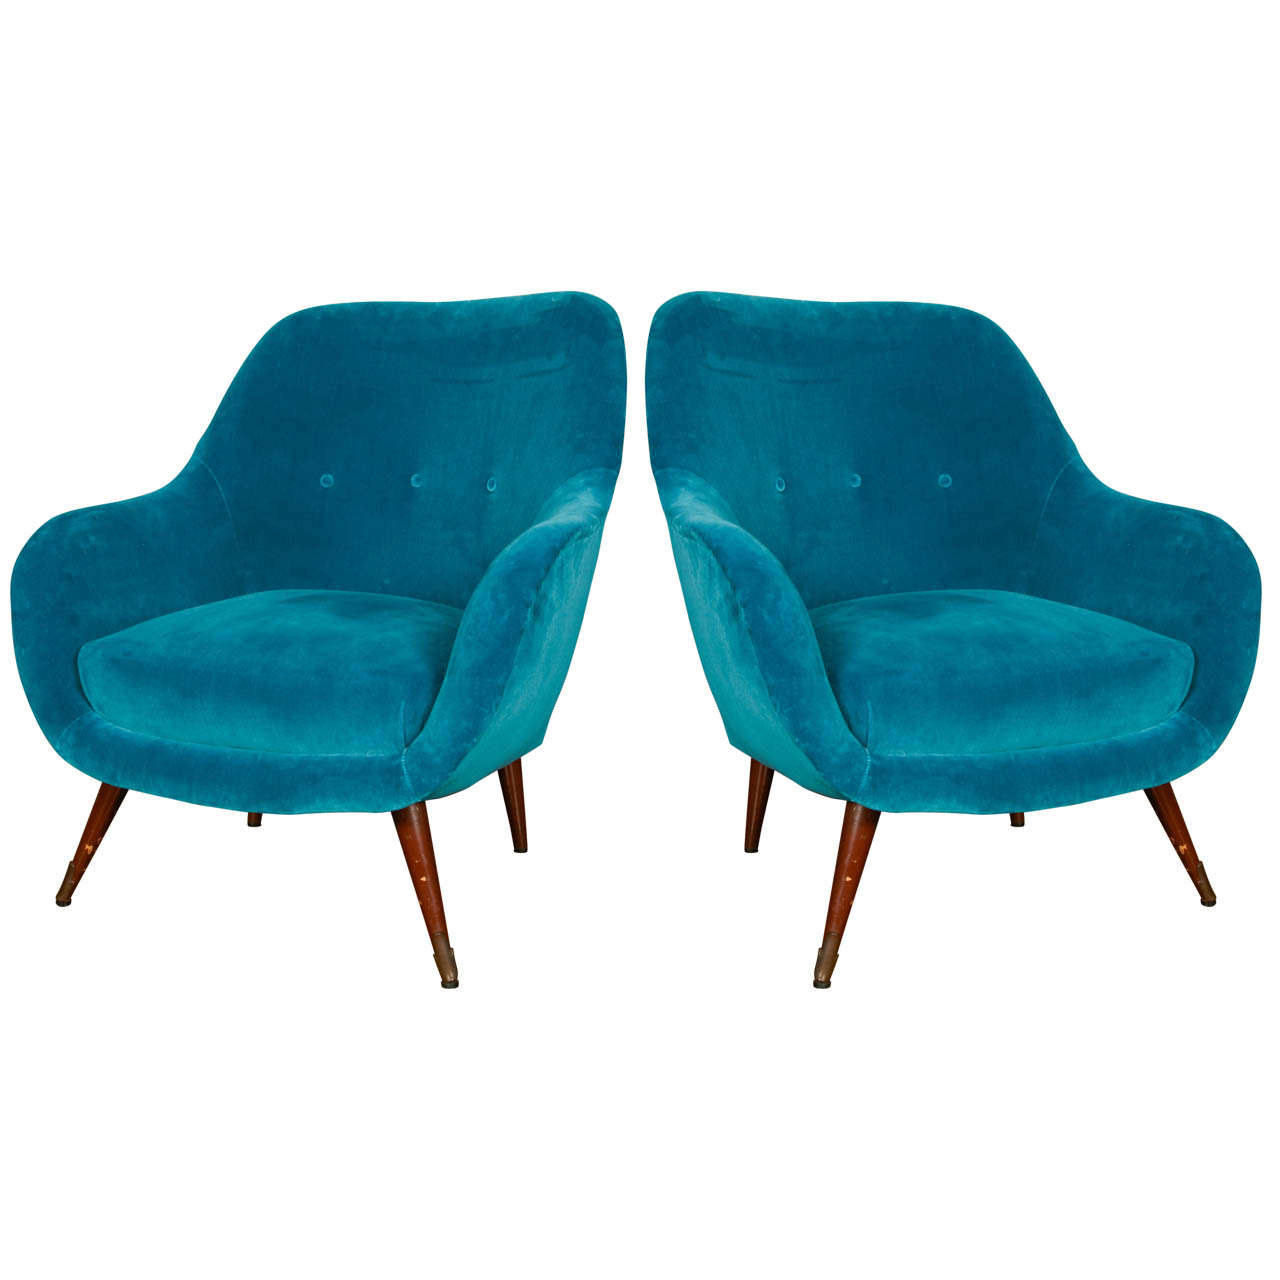 Comfortable arm chairs - Pair Of Comfortable Armchairs 1